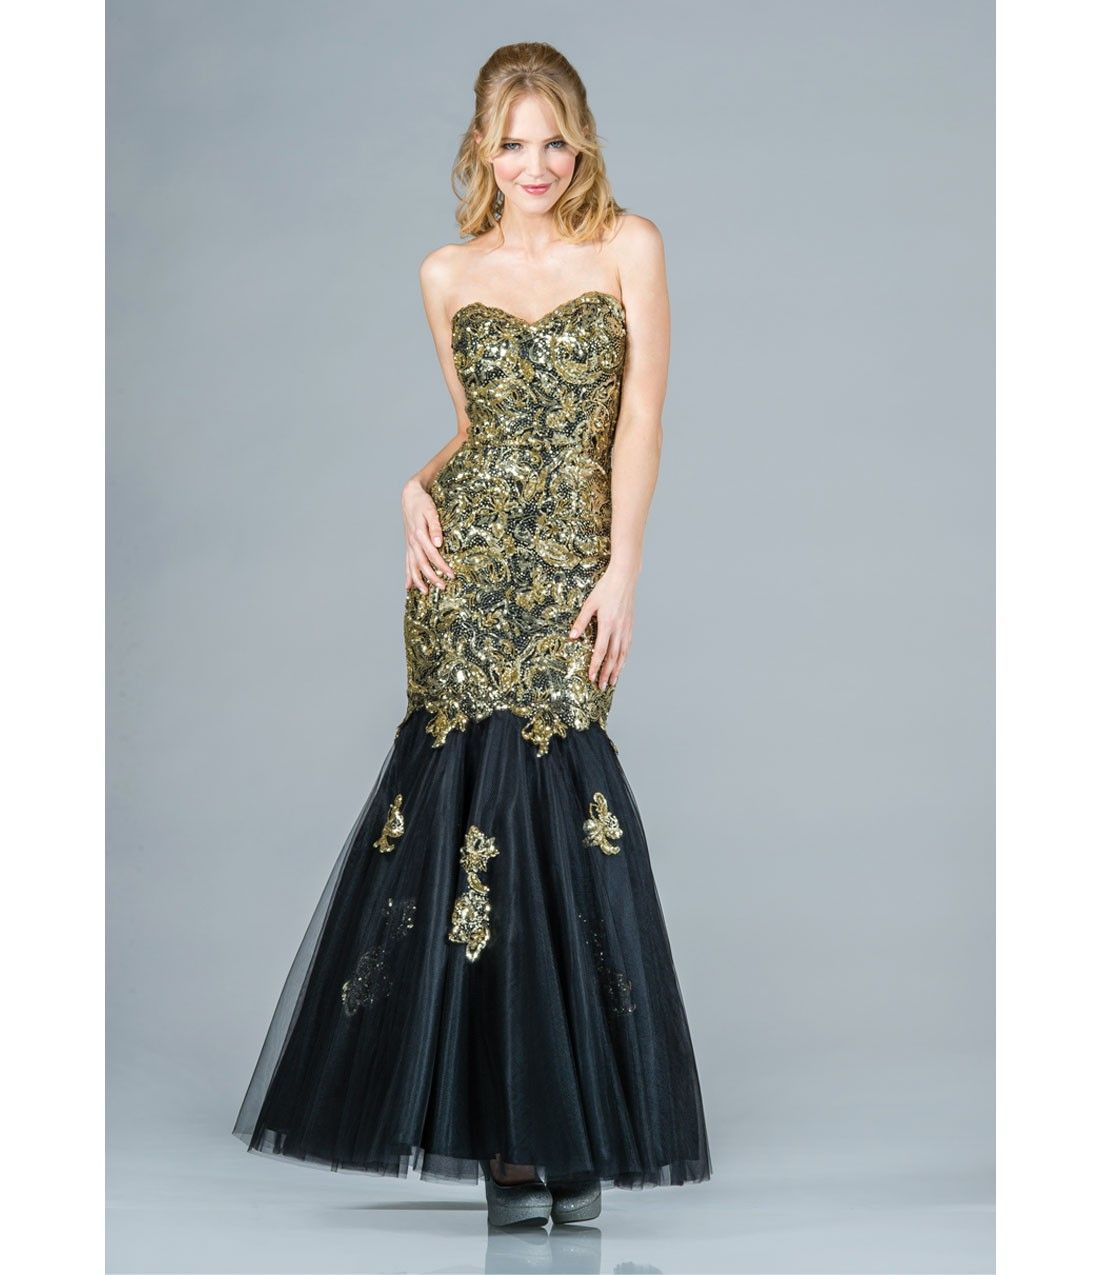 Gold Sequin & Black Tulle Strapless Mermaid Gown | dresses ...